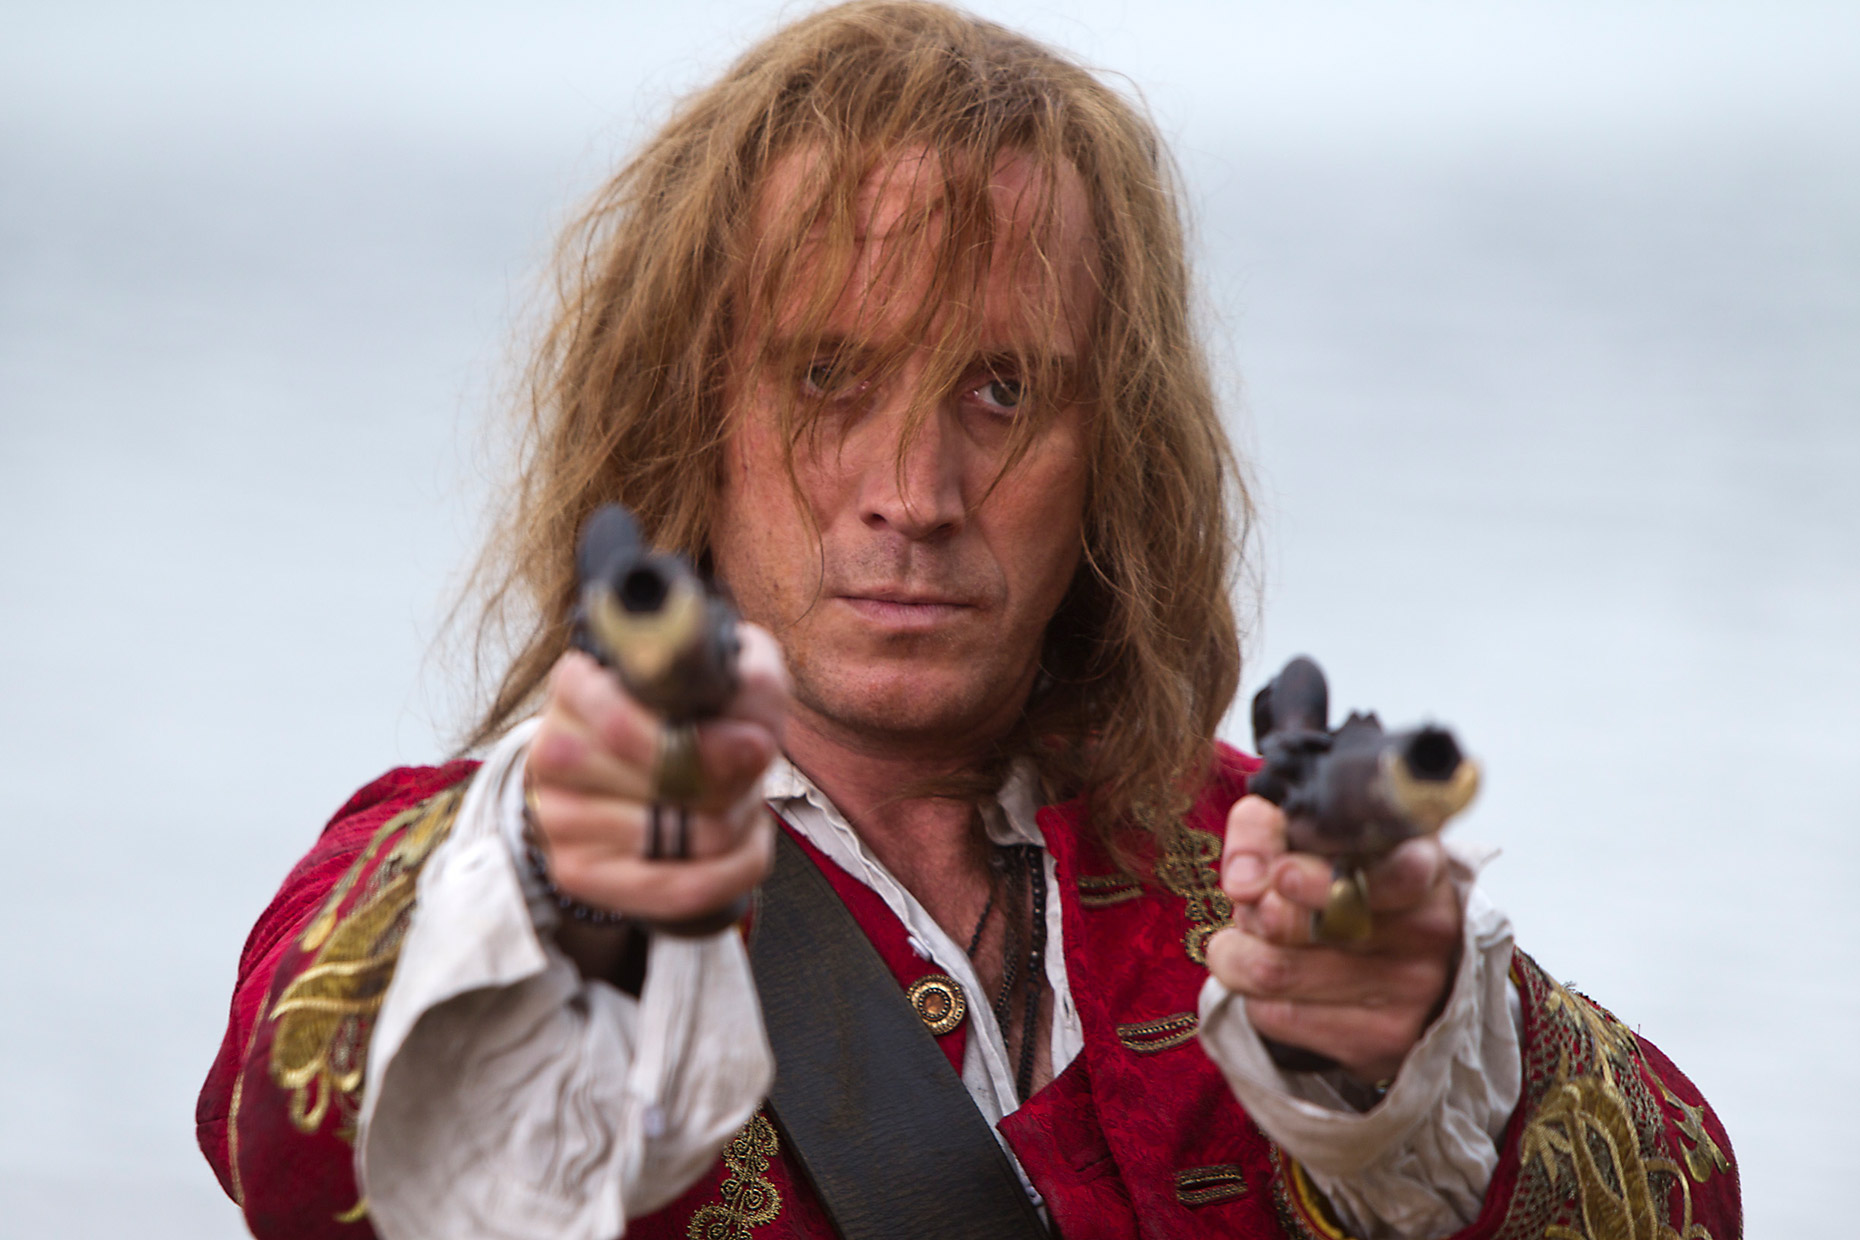 NEVERLAND : Rhys Ifans